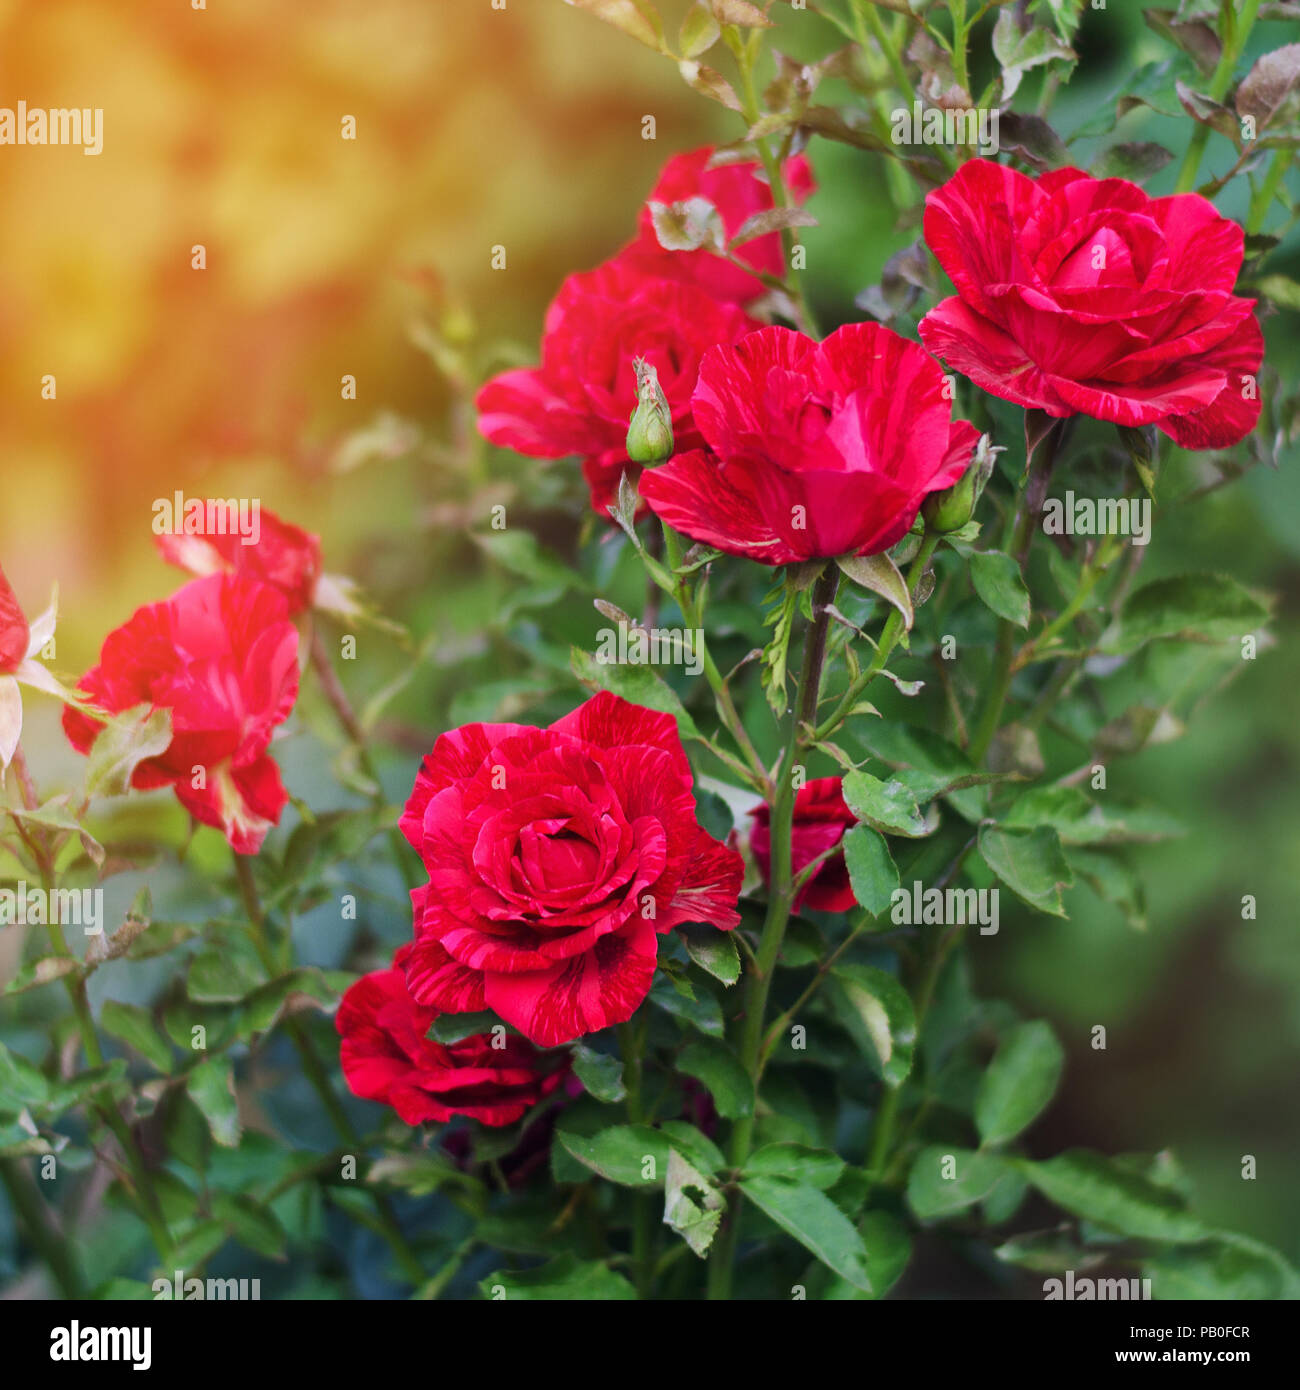 Beautiful Red Roses In The Garden Nature Wallpaper Flowers Bush